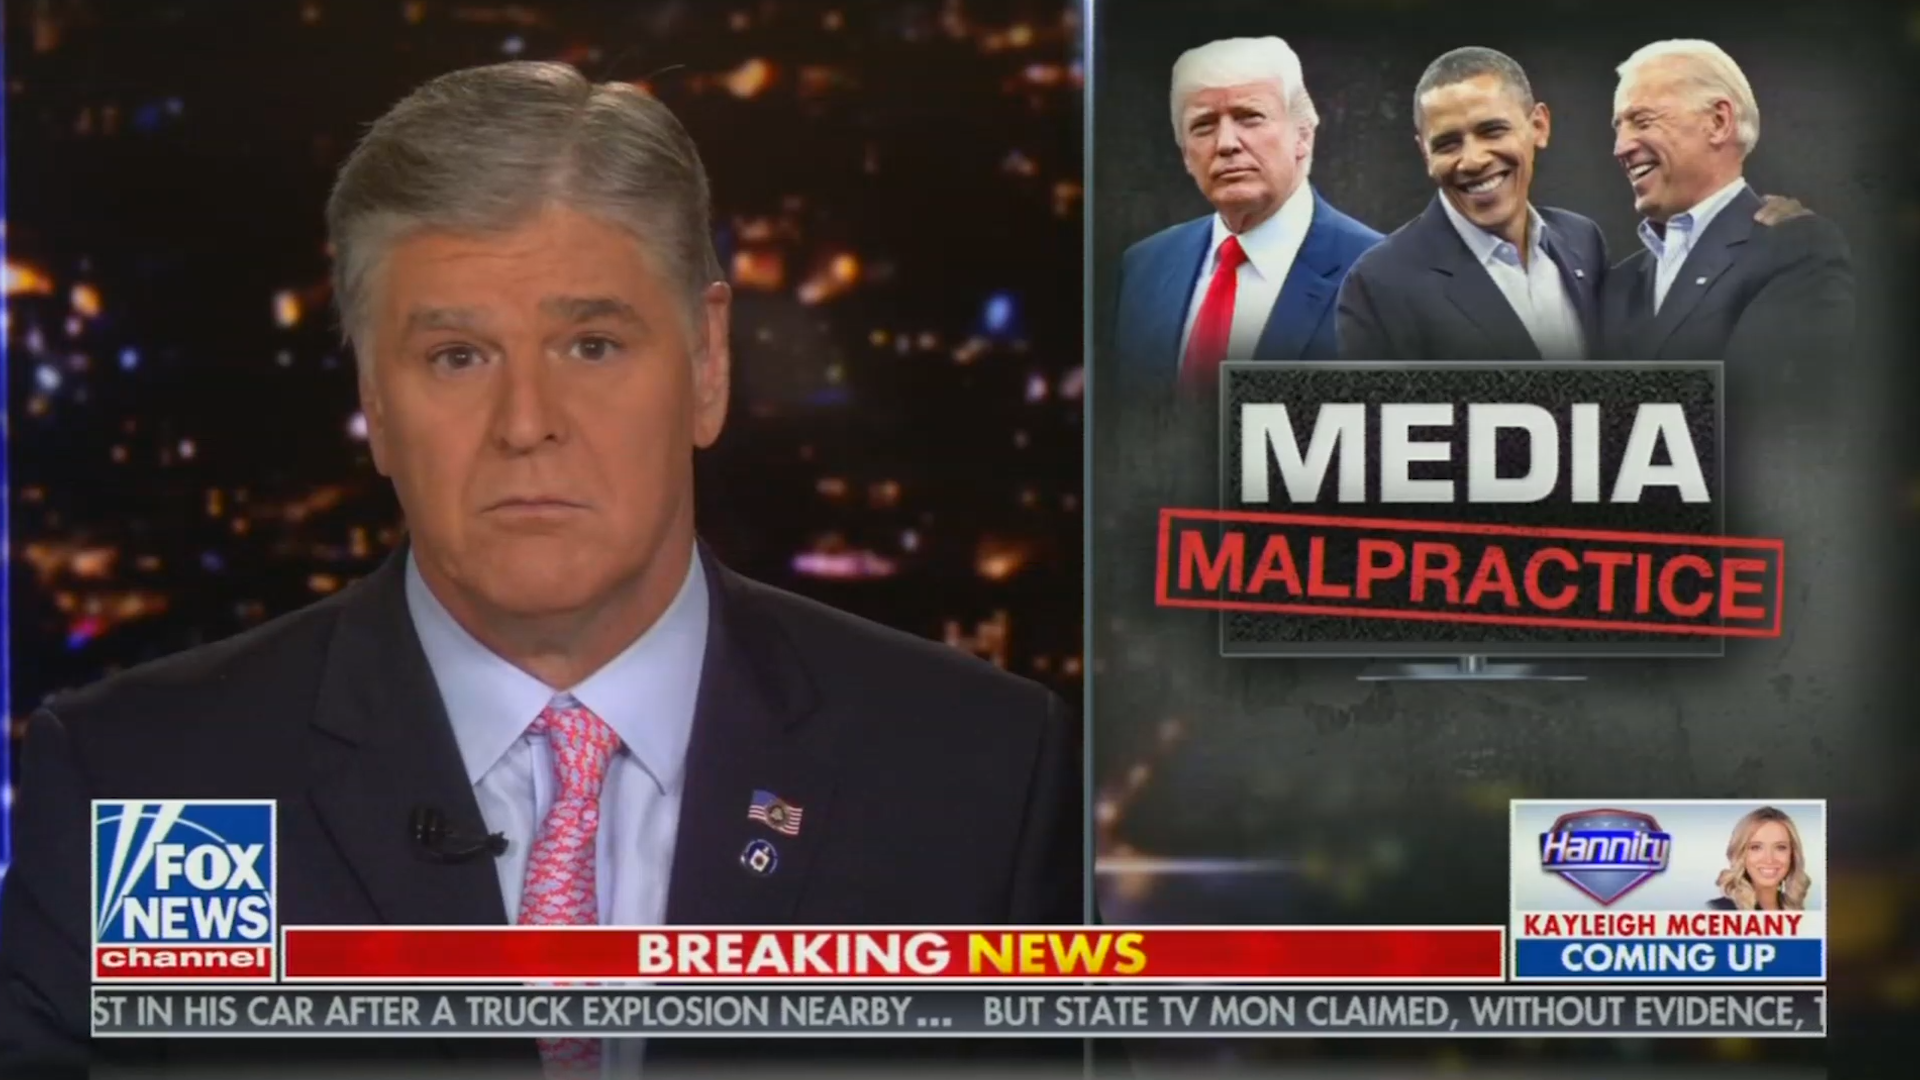 Sean Hannity makes bold admission: 'I do not vet the information on this program'